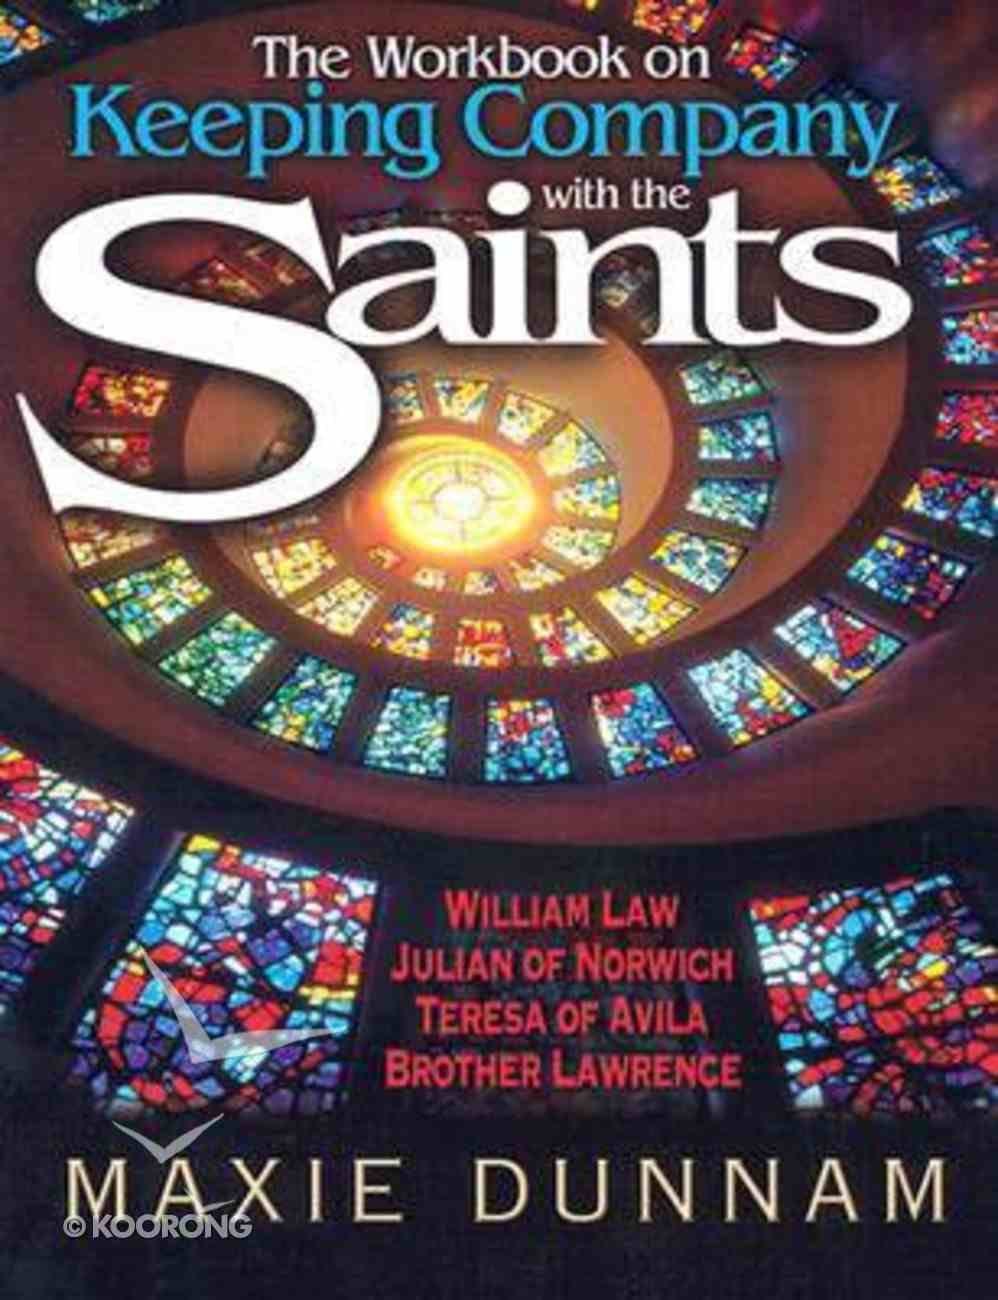 The Workbook on Keeping Company With the Saints (Upper Room Workbook Series) Paperback